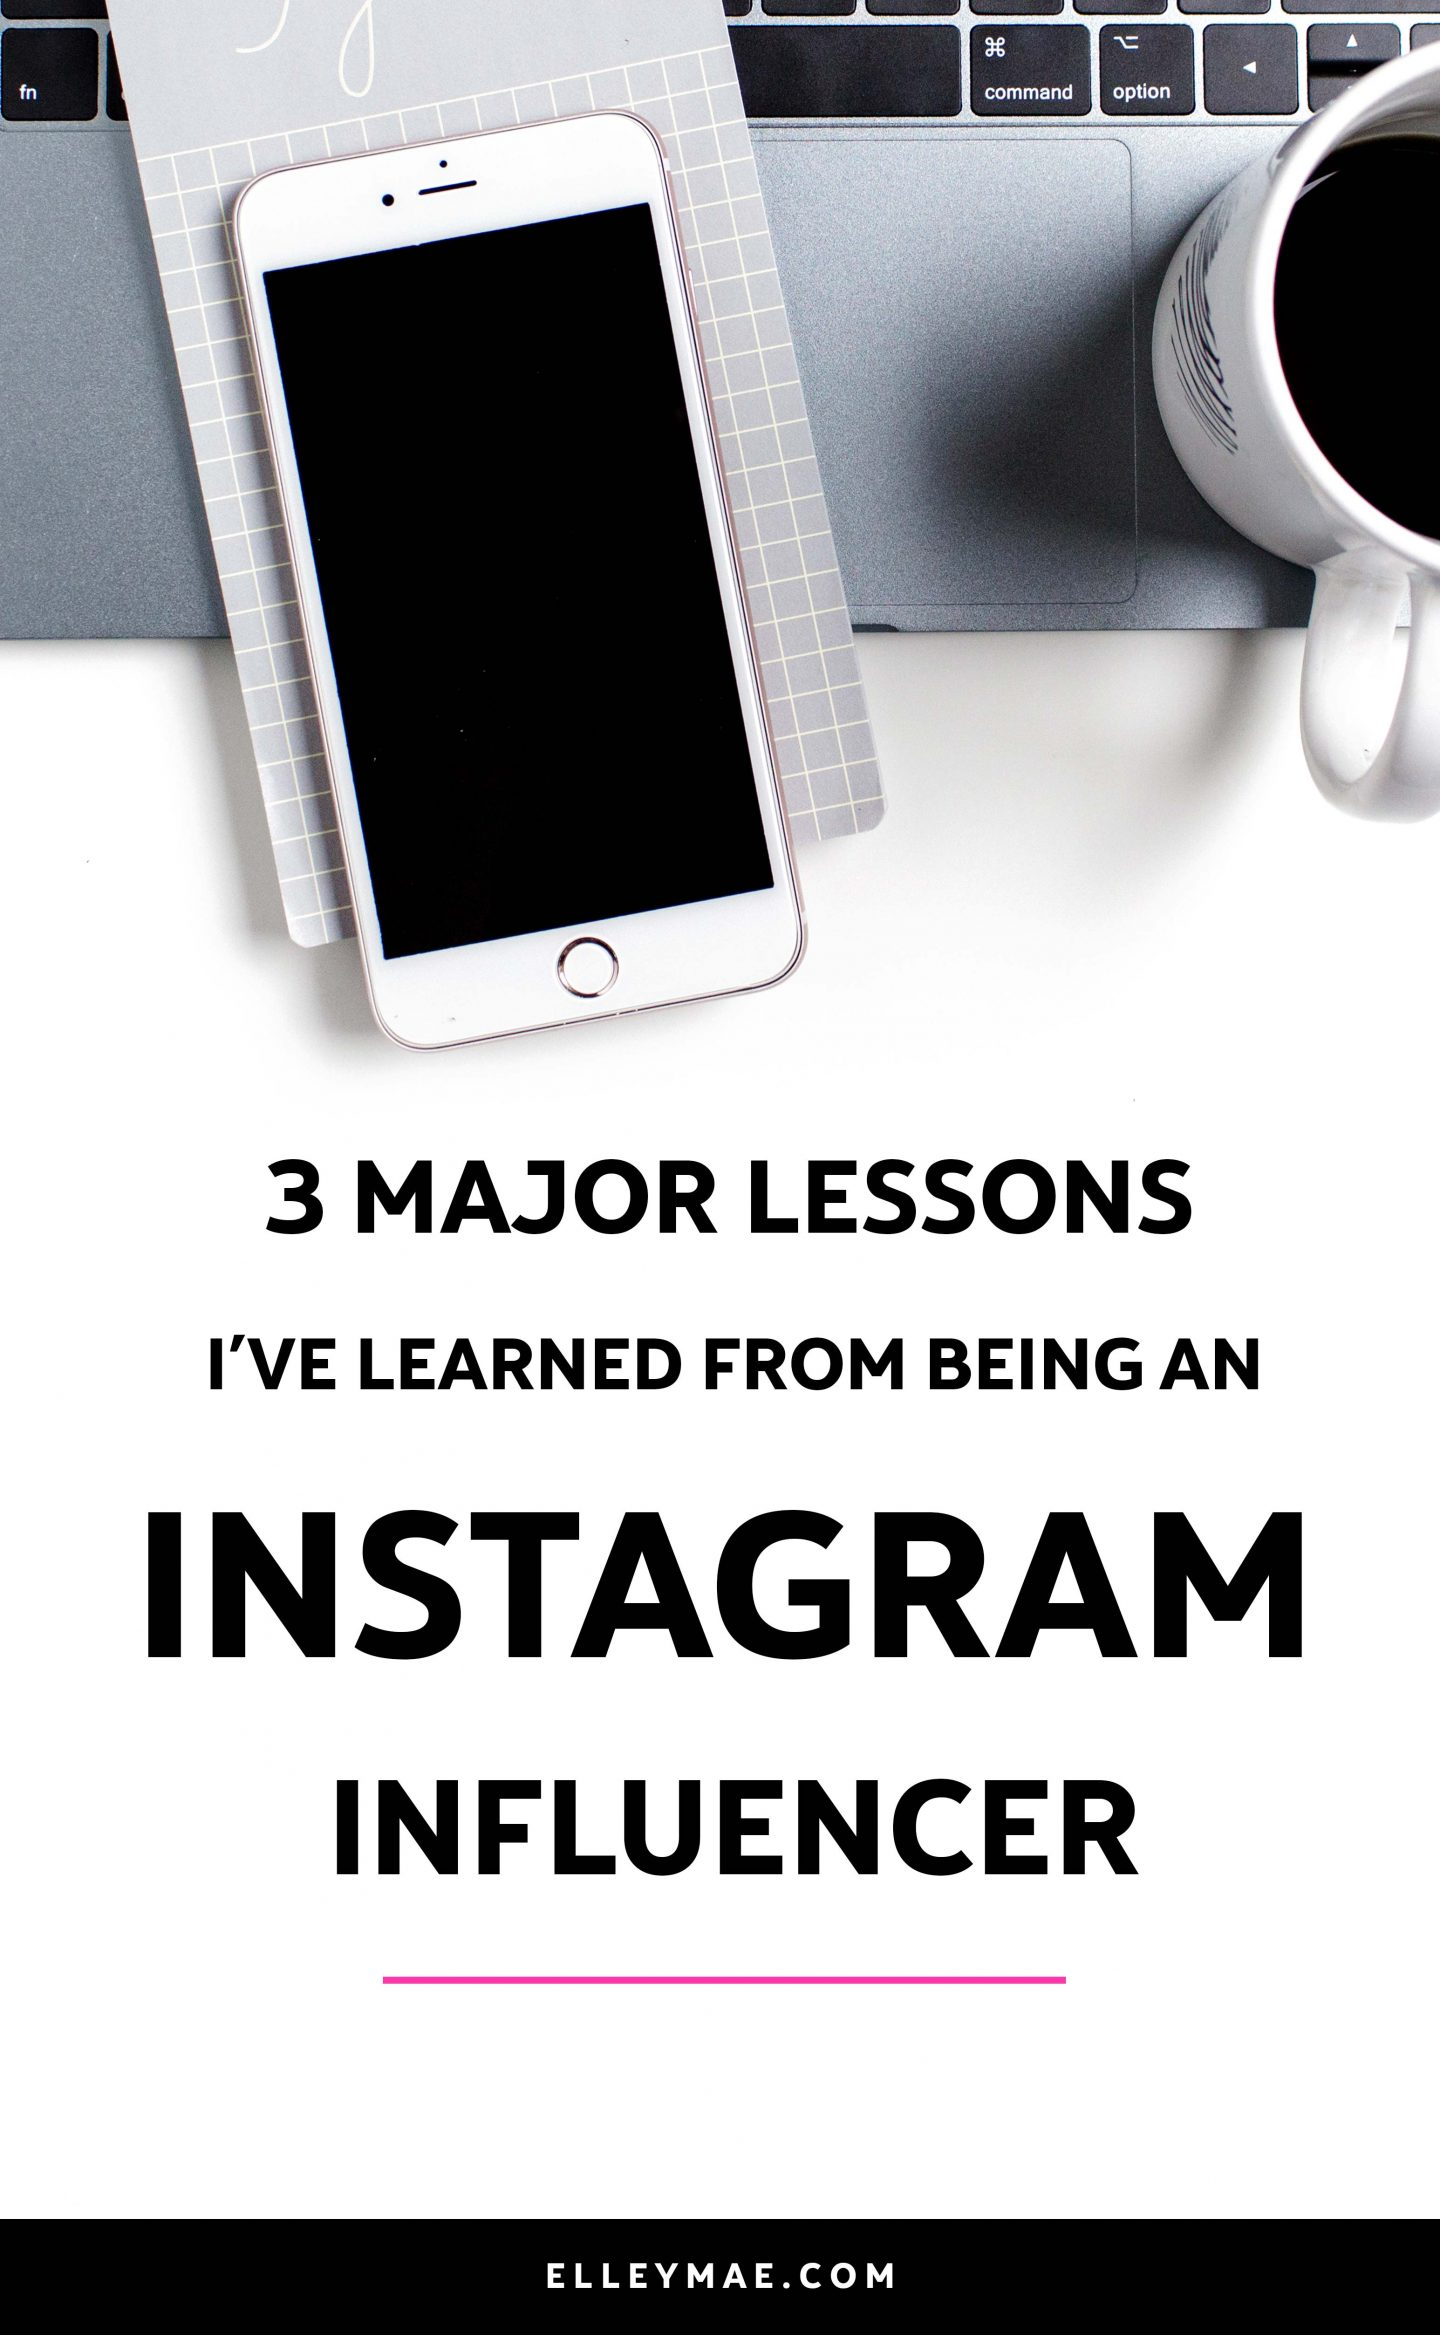 Is being an Instagram influencer really all it's made out to be? I mean, working with brands, making money online, working from home. Sounds fab right?! Find out what it takes to really be successful on the social media platform for creatives with 3 lessons I've learned - ElleyMae.com | Instagram Influencer | Influencer Marketing | Social Media Influencer | Social Media Marketing | #Influencer #InstagramInfluencer